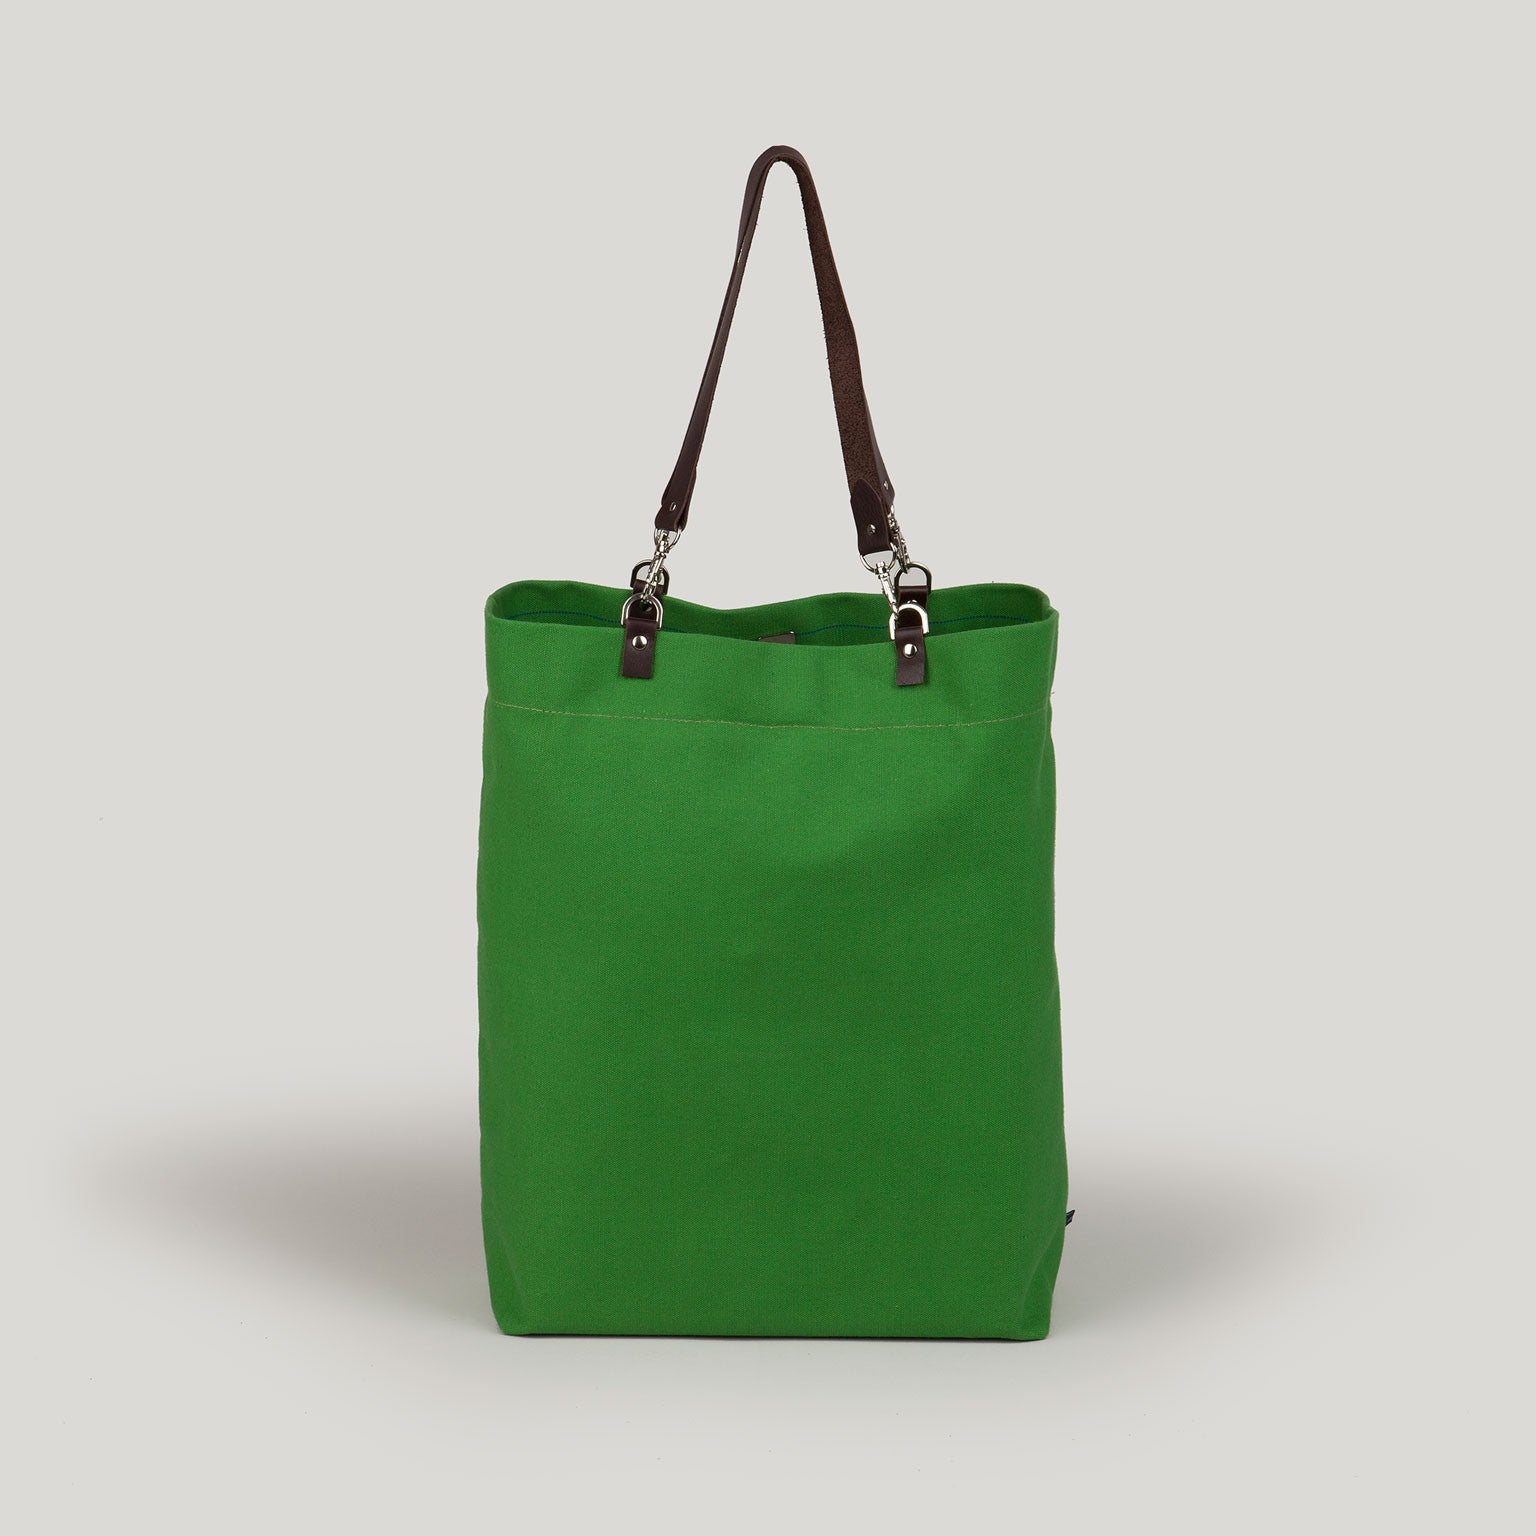 AVA tote - apple green